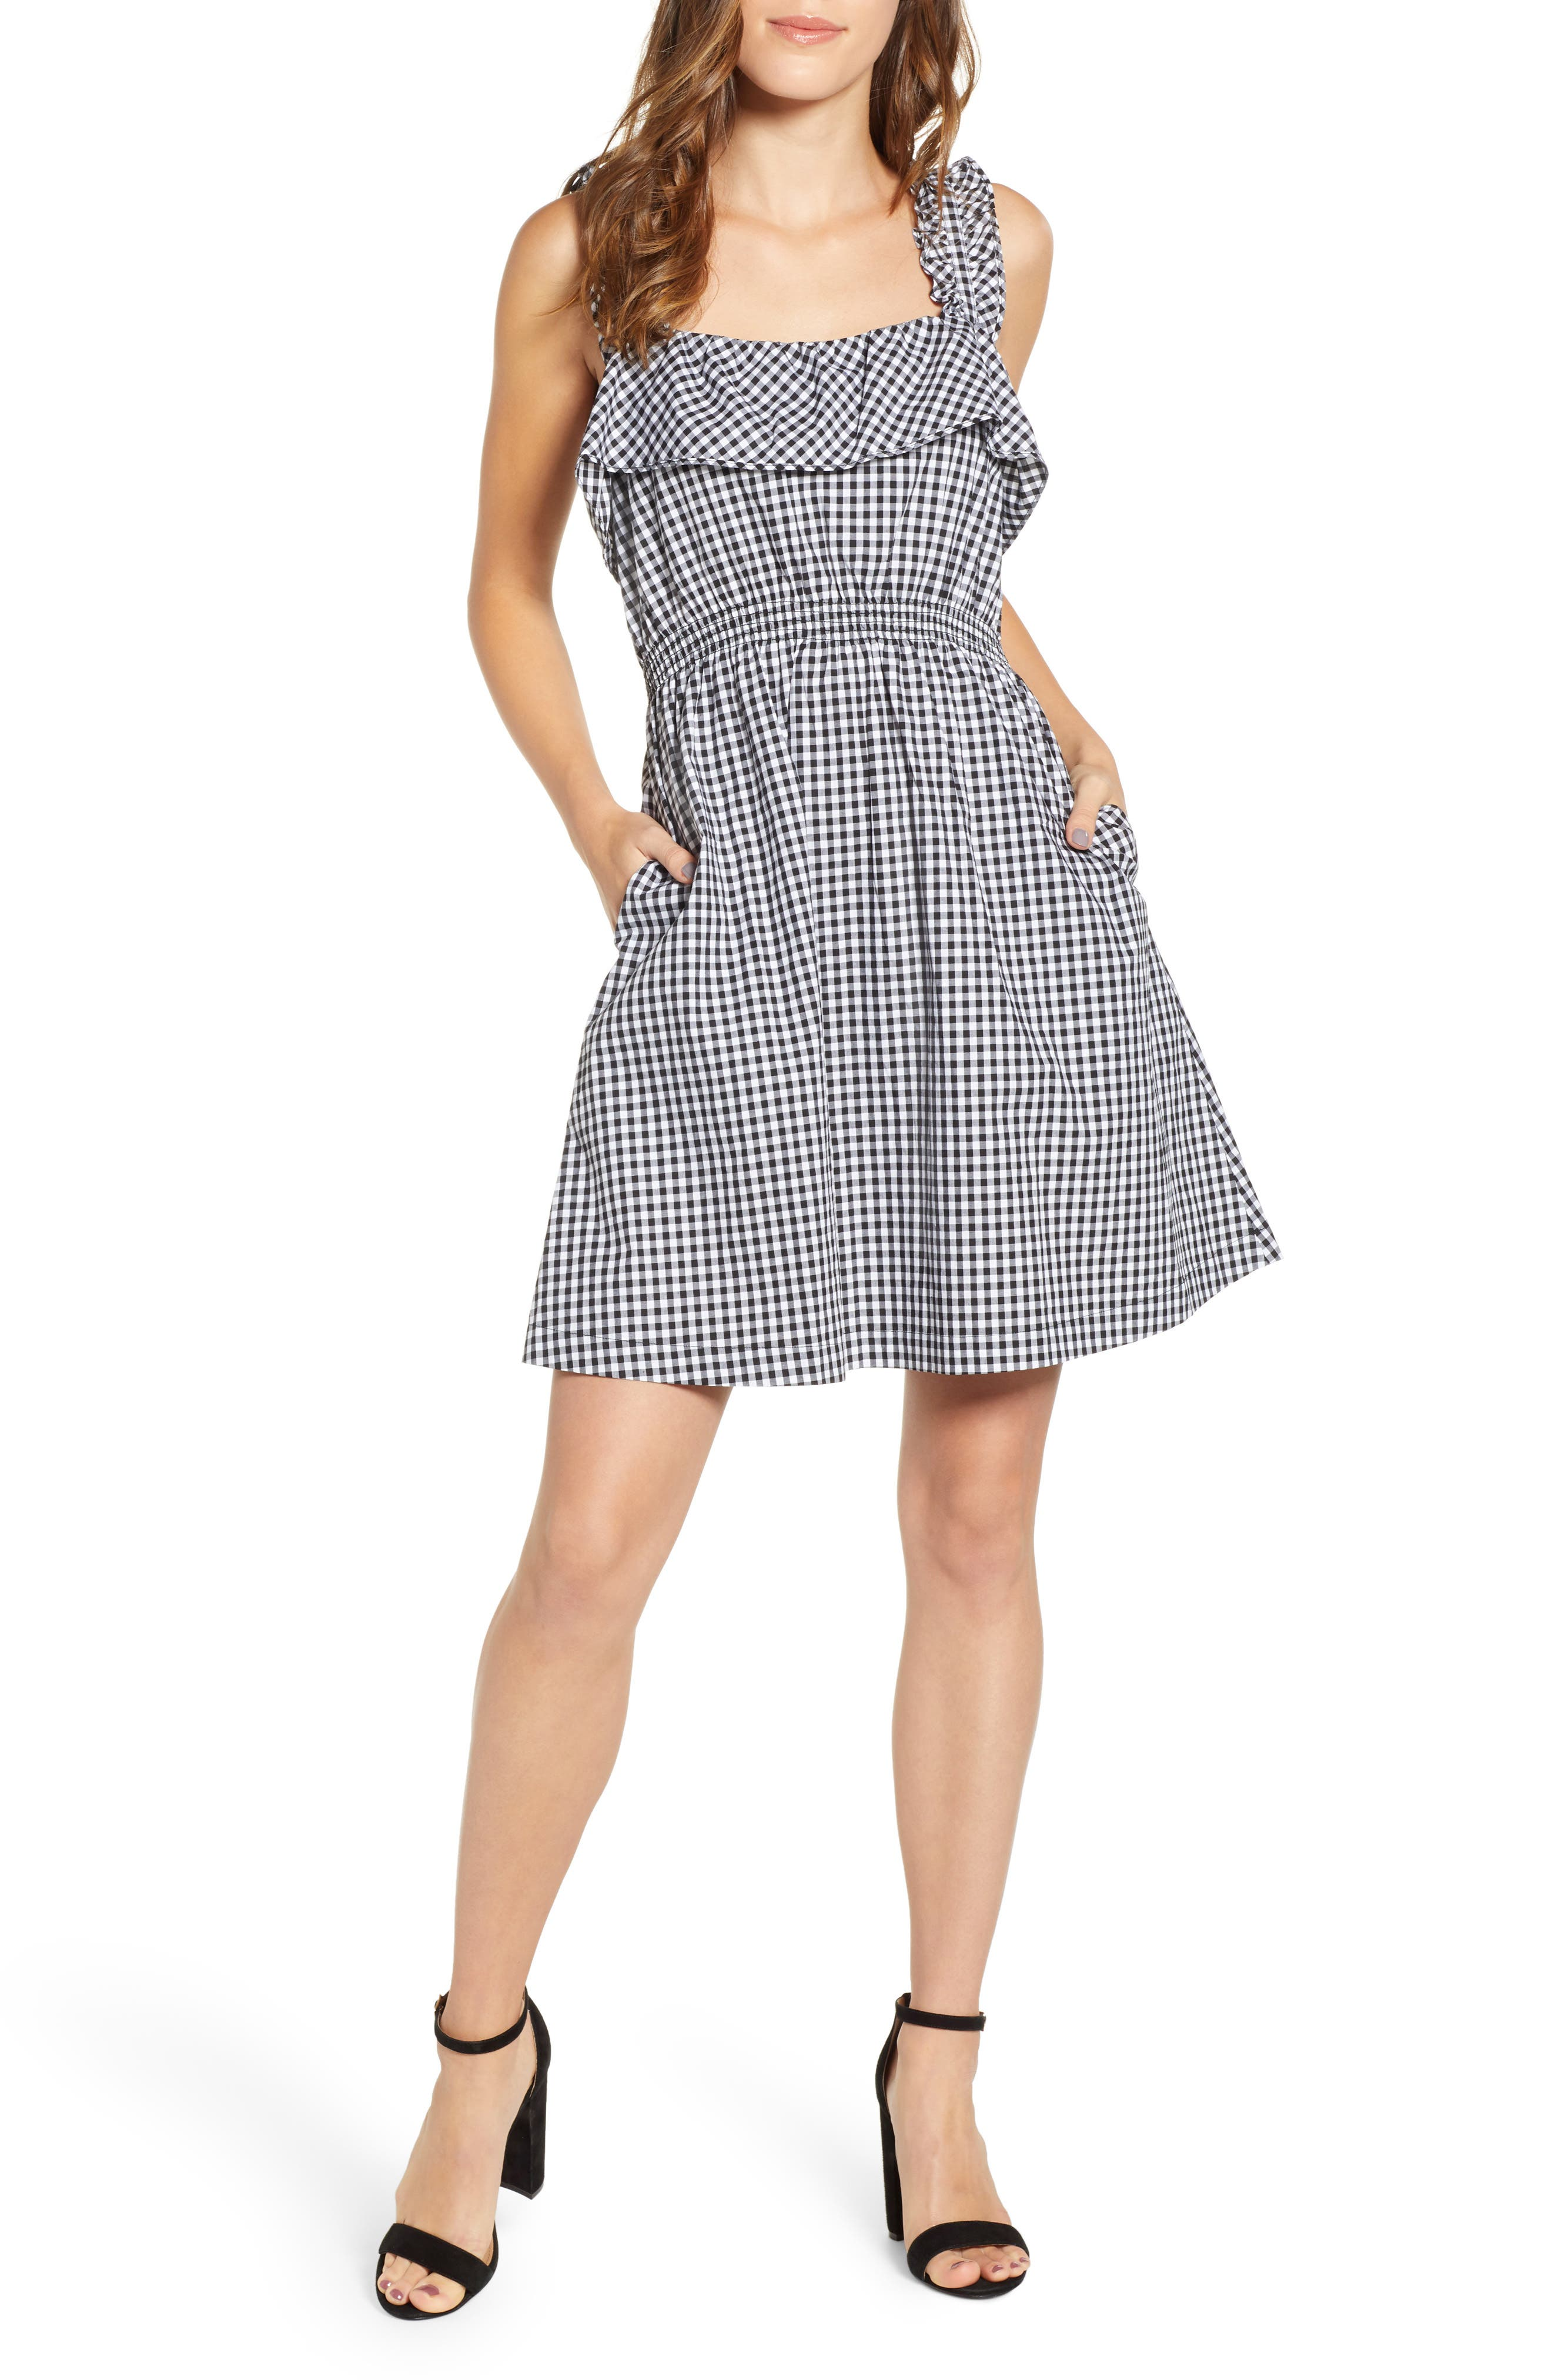 7 FOR ALL MANKIND<SUP>®</SUP>, Gingham Ruffle Dress, Main thumbnail 1, color, 005